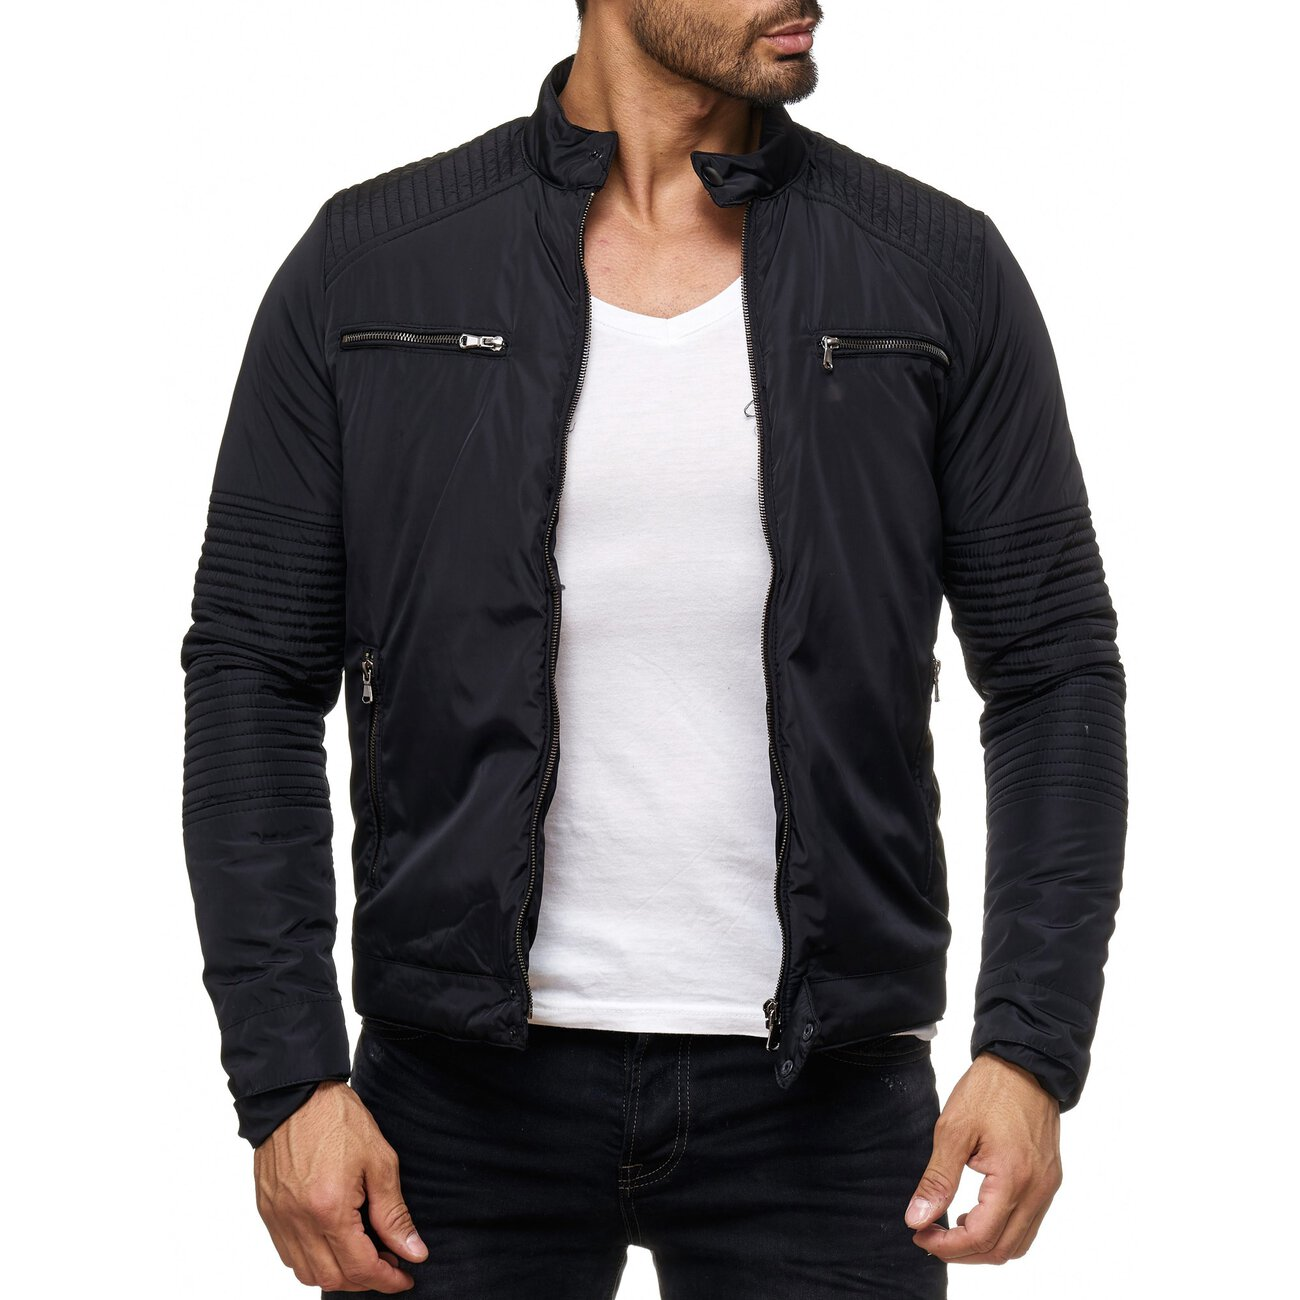 herren jacke bergangsjacke windbreaker gesteppte blouson. Black Bedroom Furniture Sets. Home Design Ideas